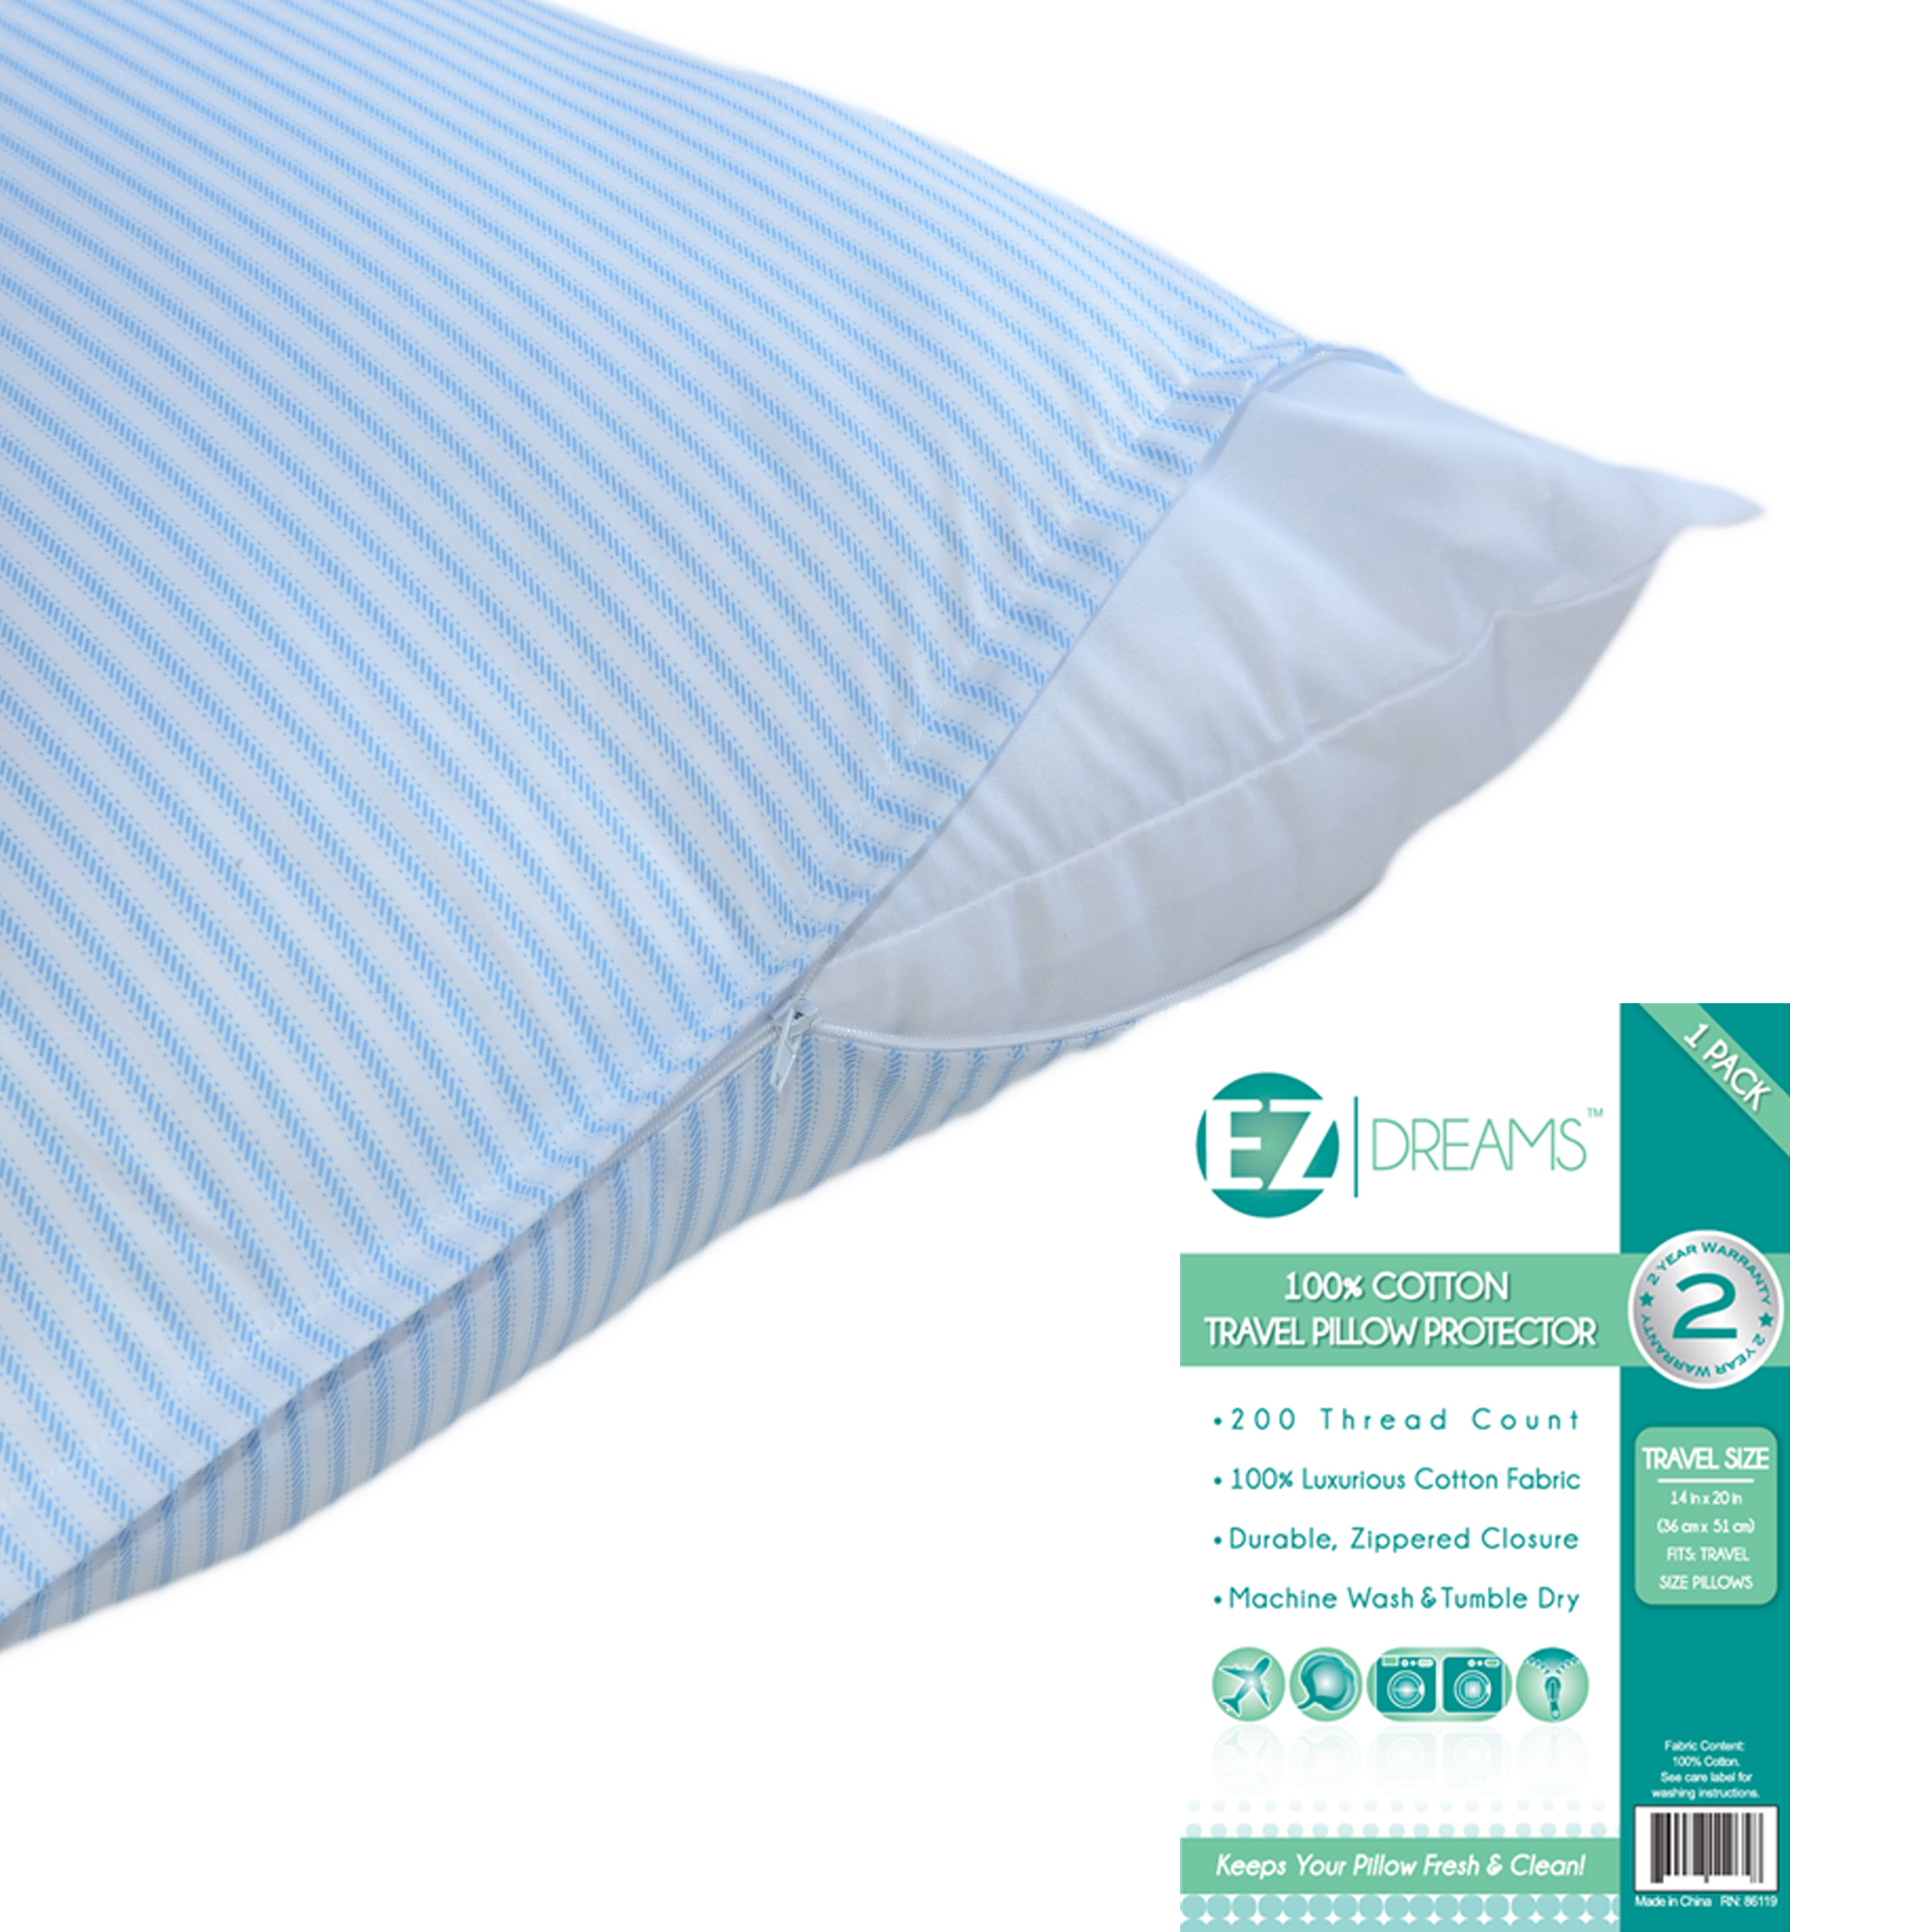 EZ Dreams Travel Size 100% Cotton Pillow Protector: 200 Thread Count, Zippered, 14in x... by